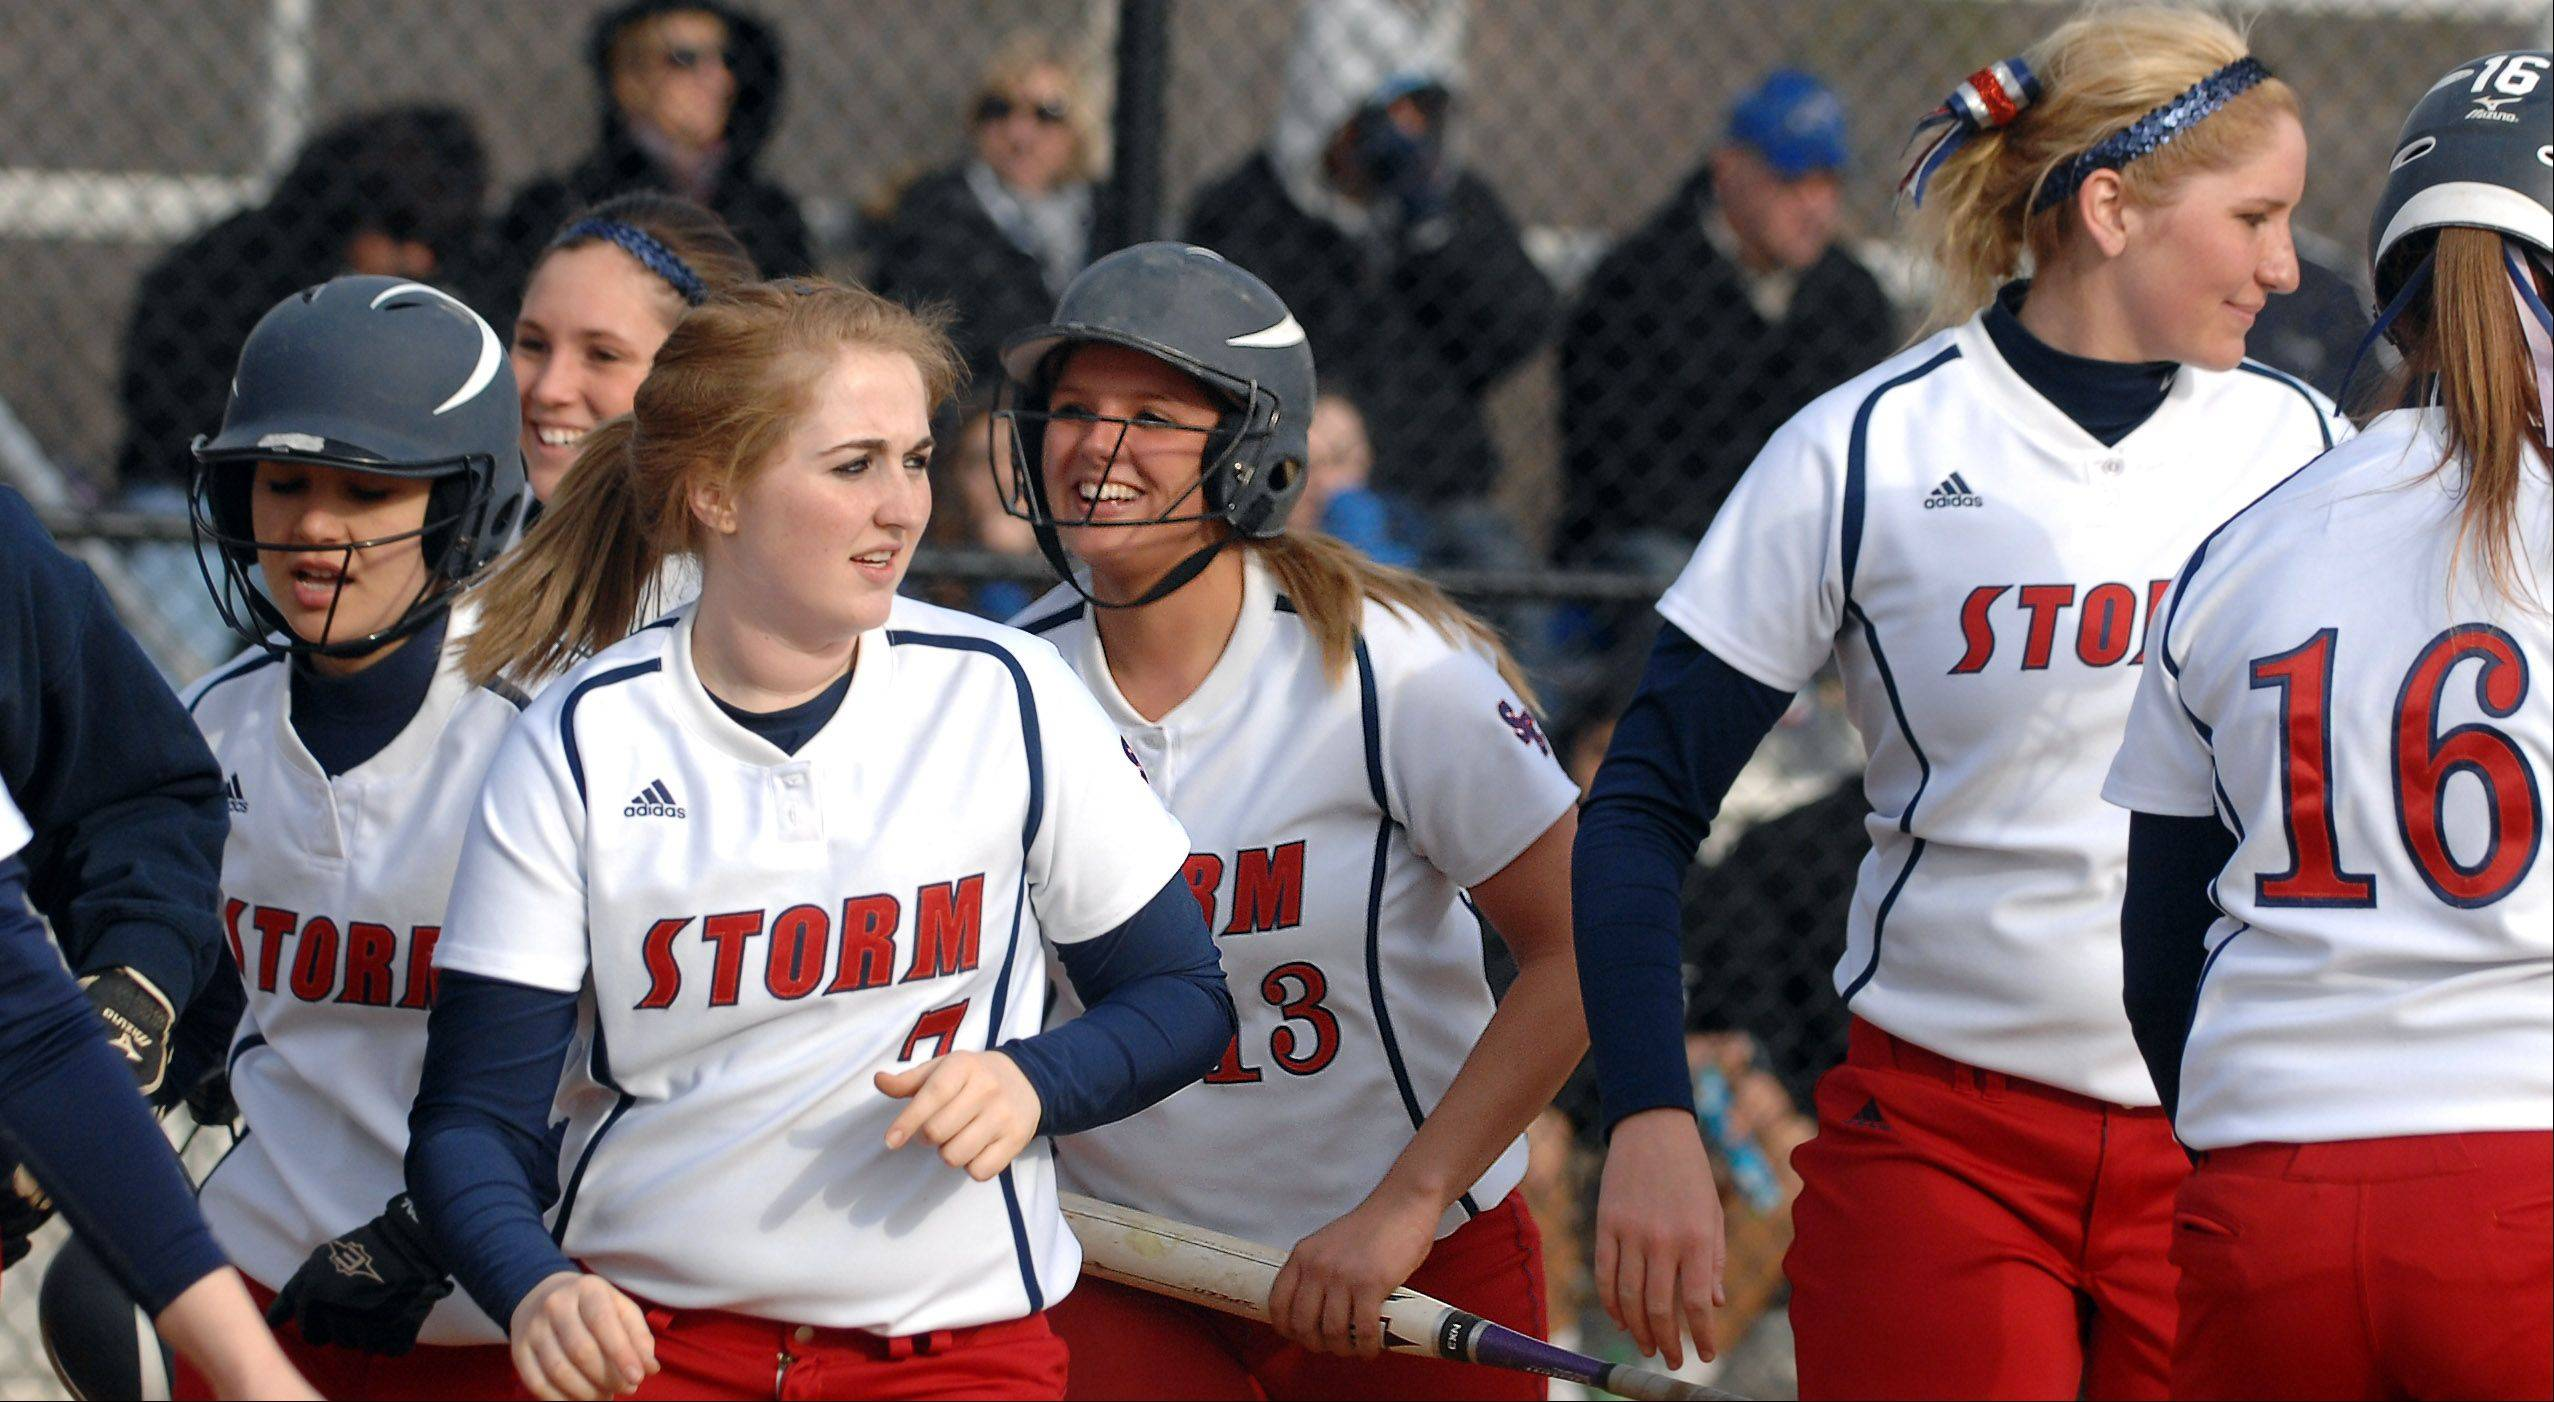 South Elgin players, including Alyssa Buddle (13), head back to the dugout after her 3-run homer against St. Charles North during Friday's game in St. Charles.